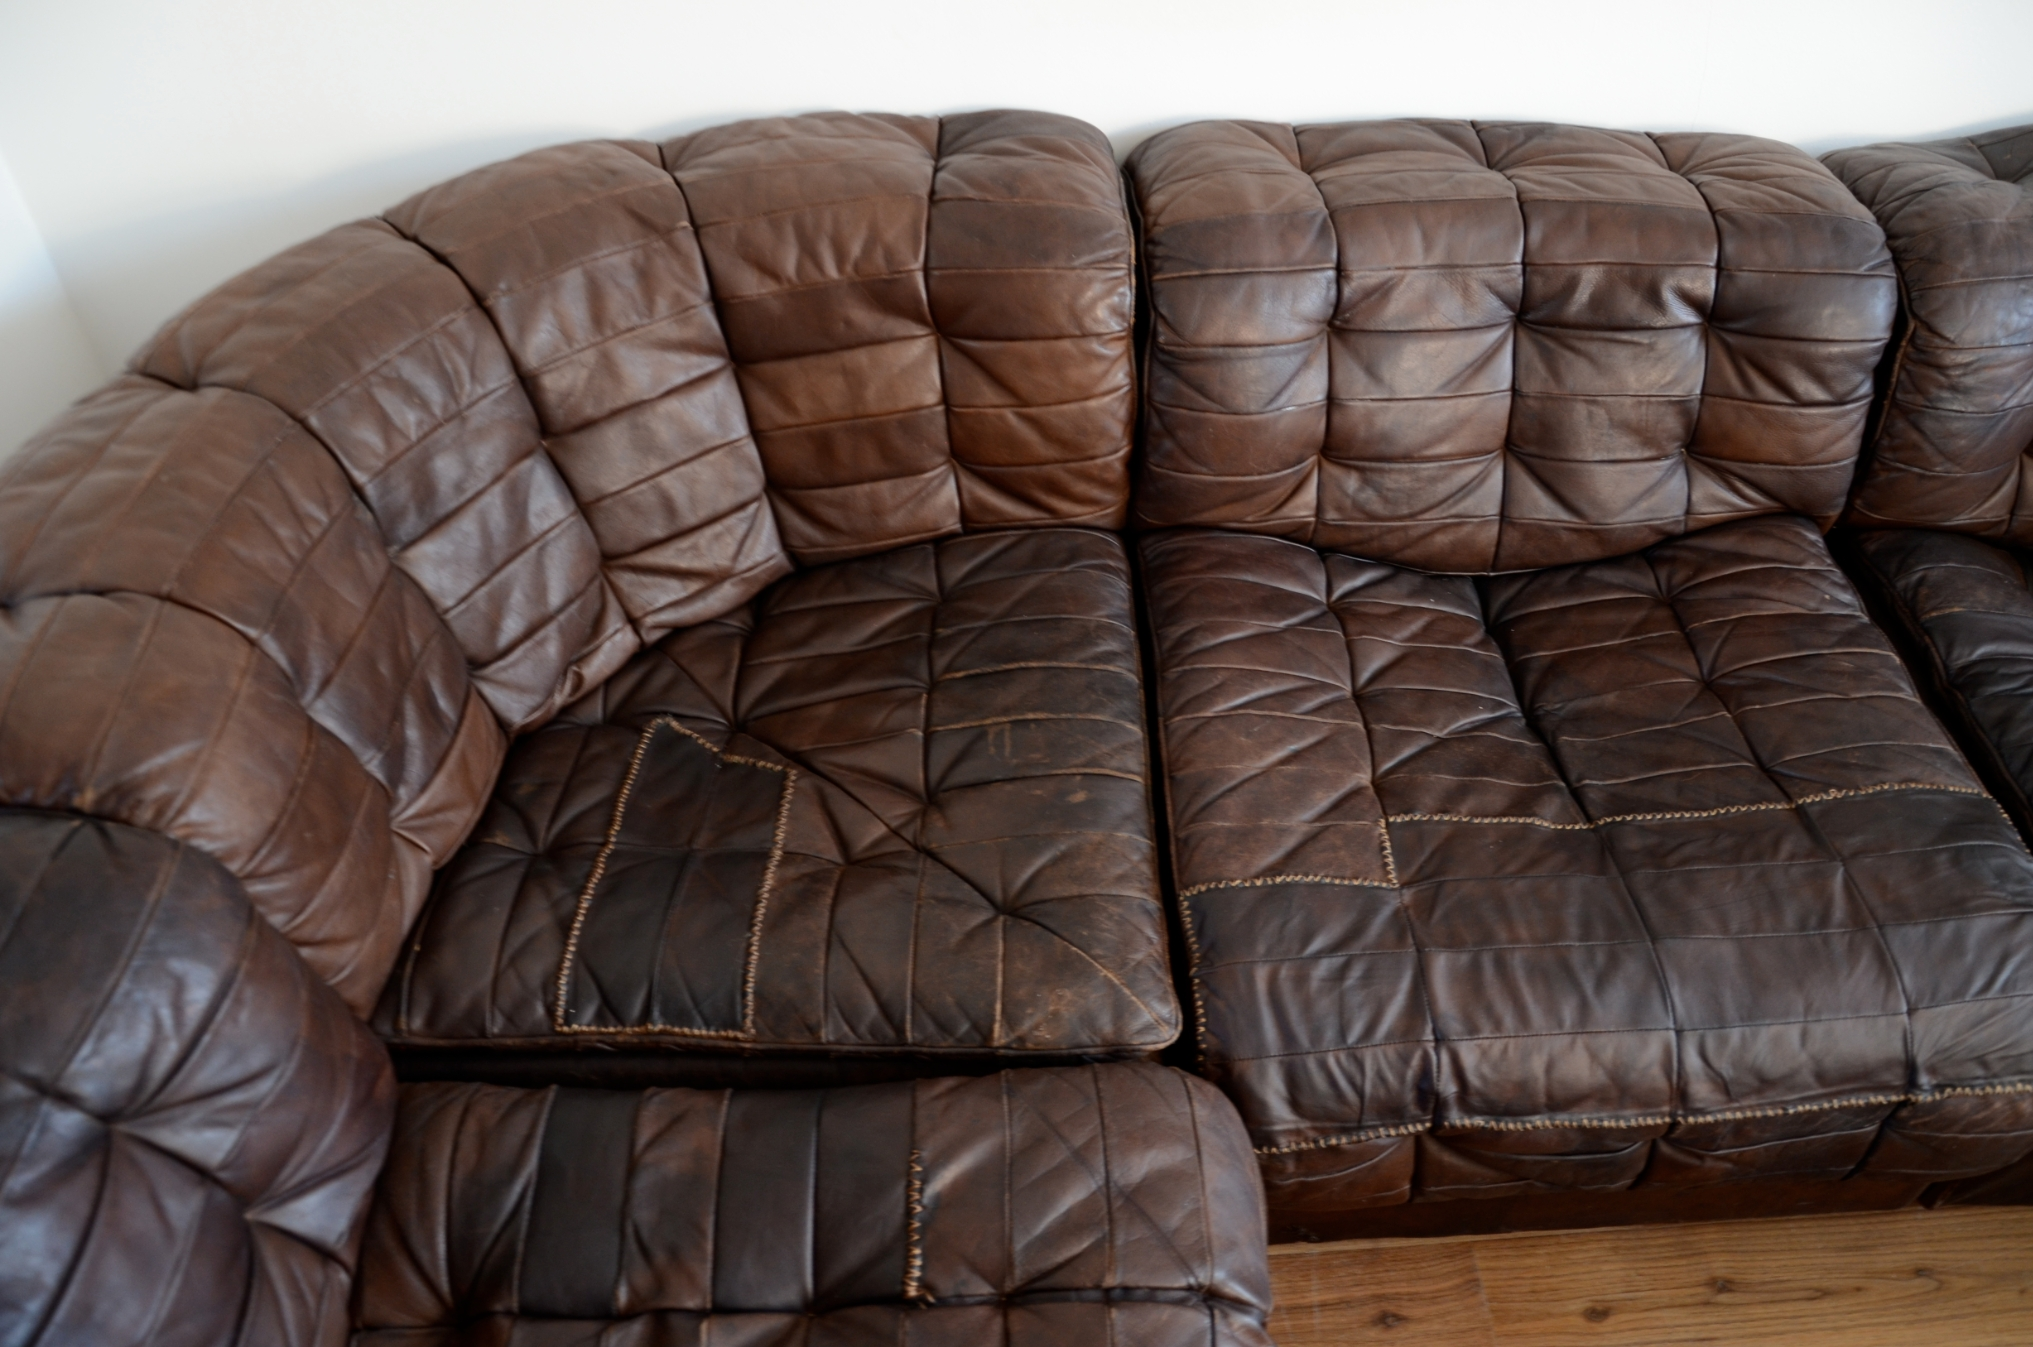 Great Vintage Leather Sofa - Myonehouse regarding Victorian Leather Sofas (Image 5 of 30)